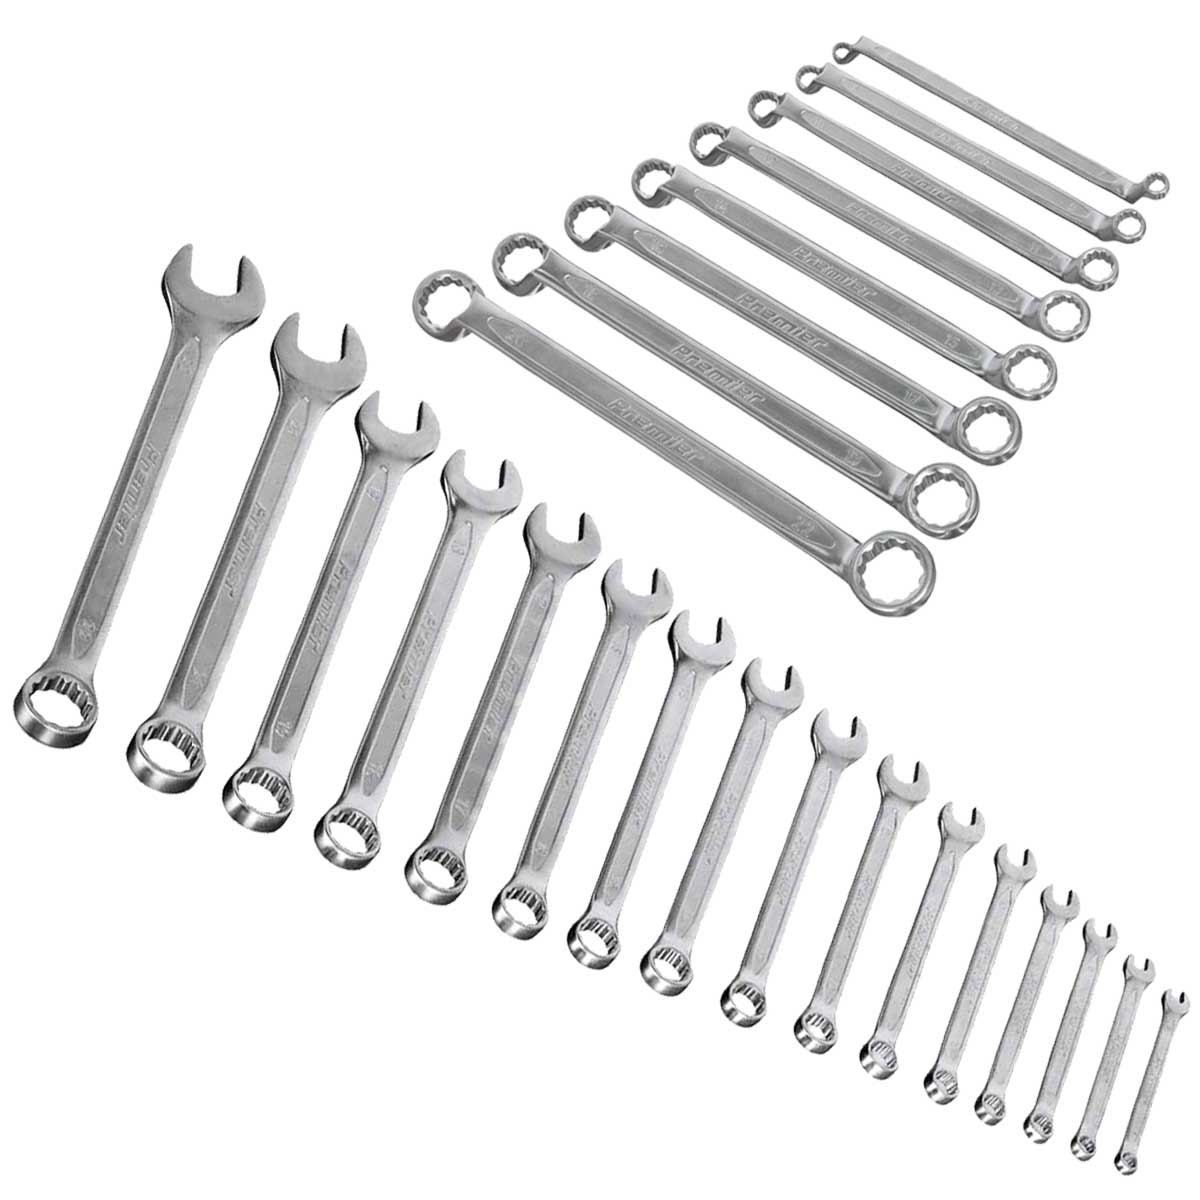 8 Piece Sealey AK63257 Offset Double End Ring Spanner Set Metric in EVA Tray